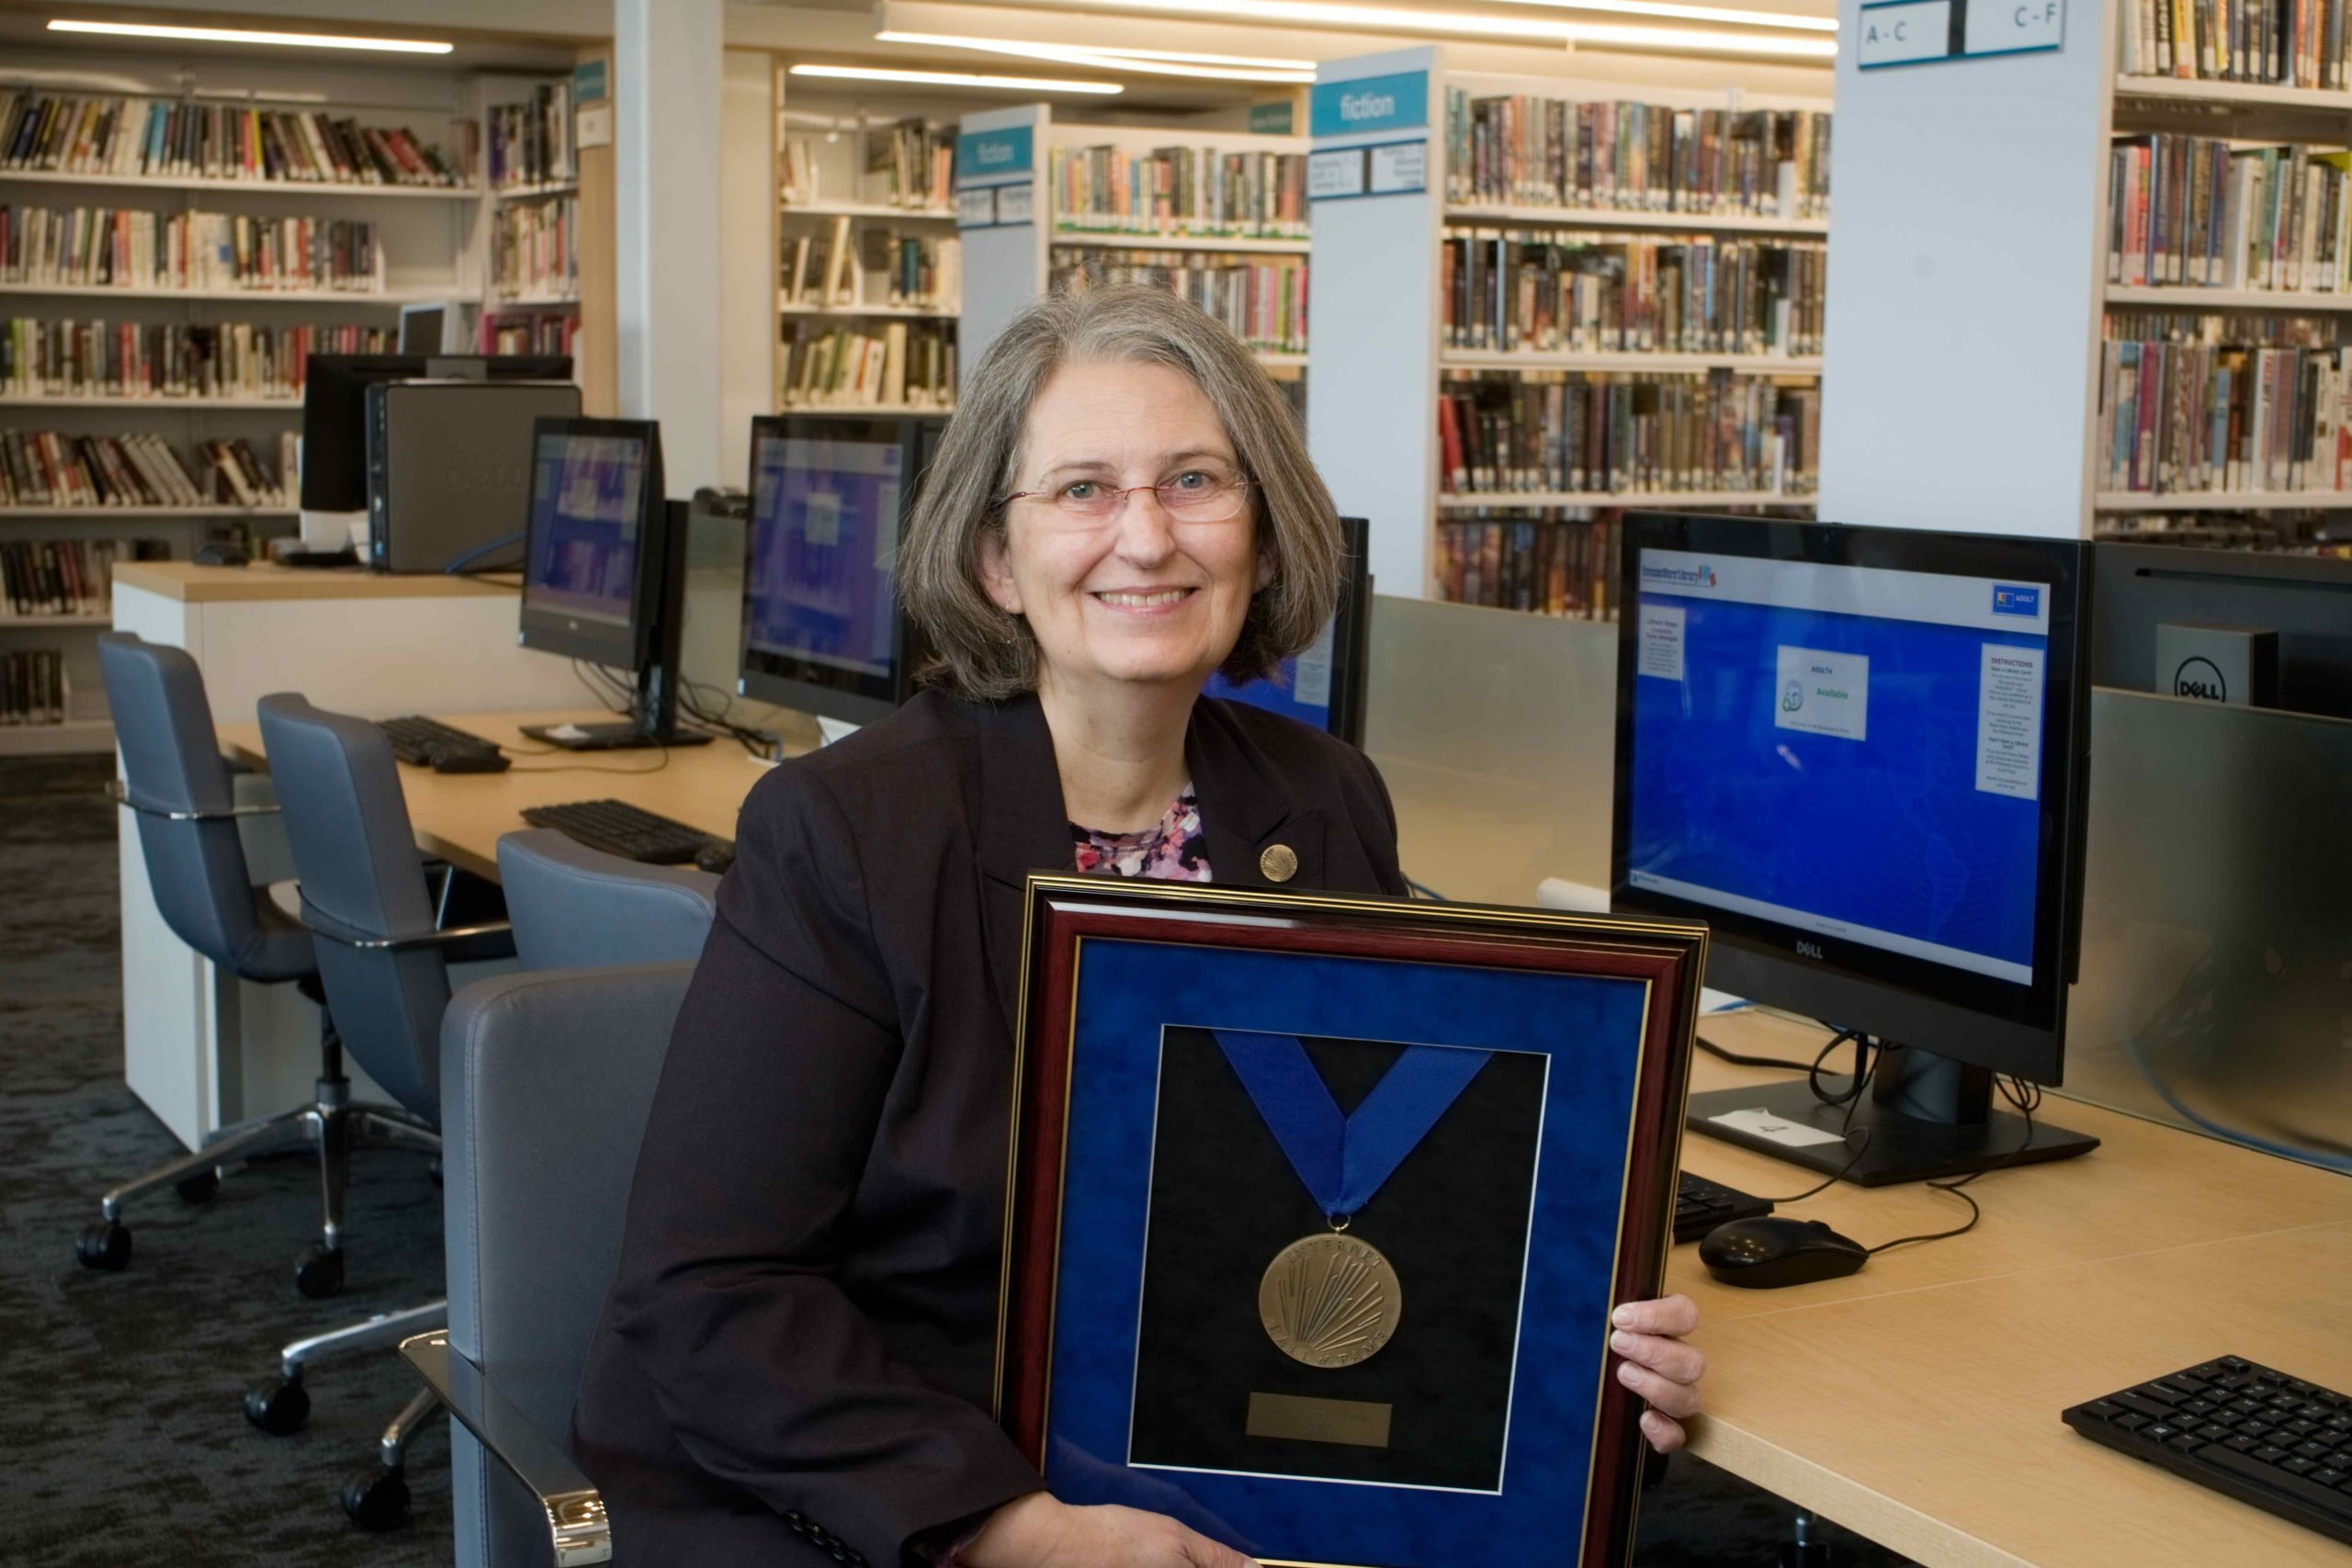 Jean Armour-Polly sits in library with her award